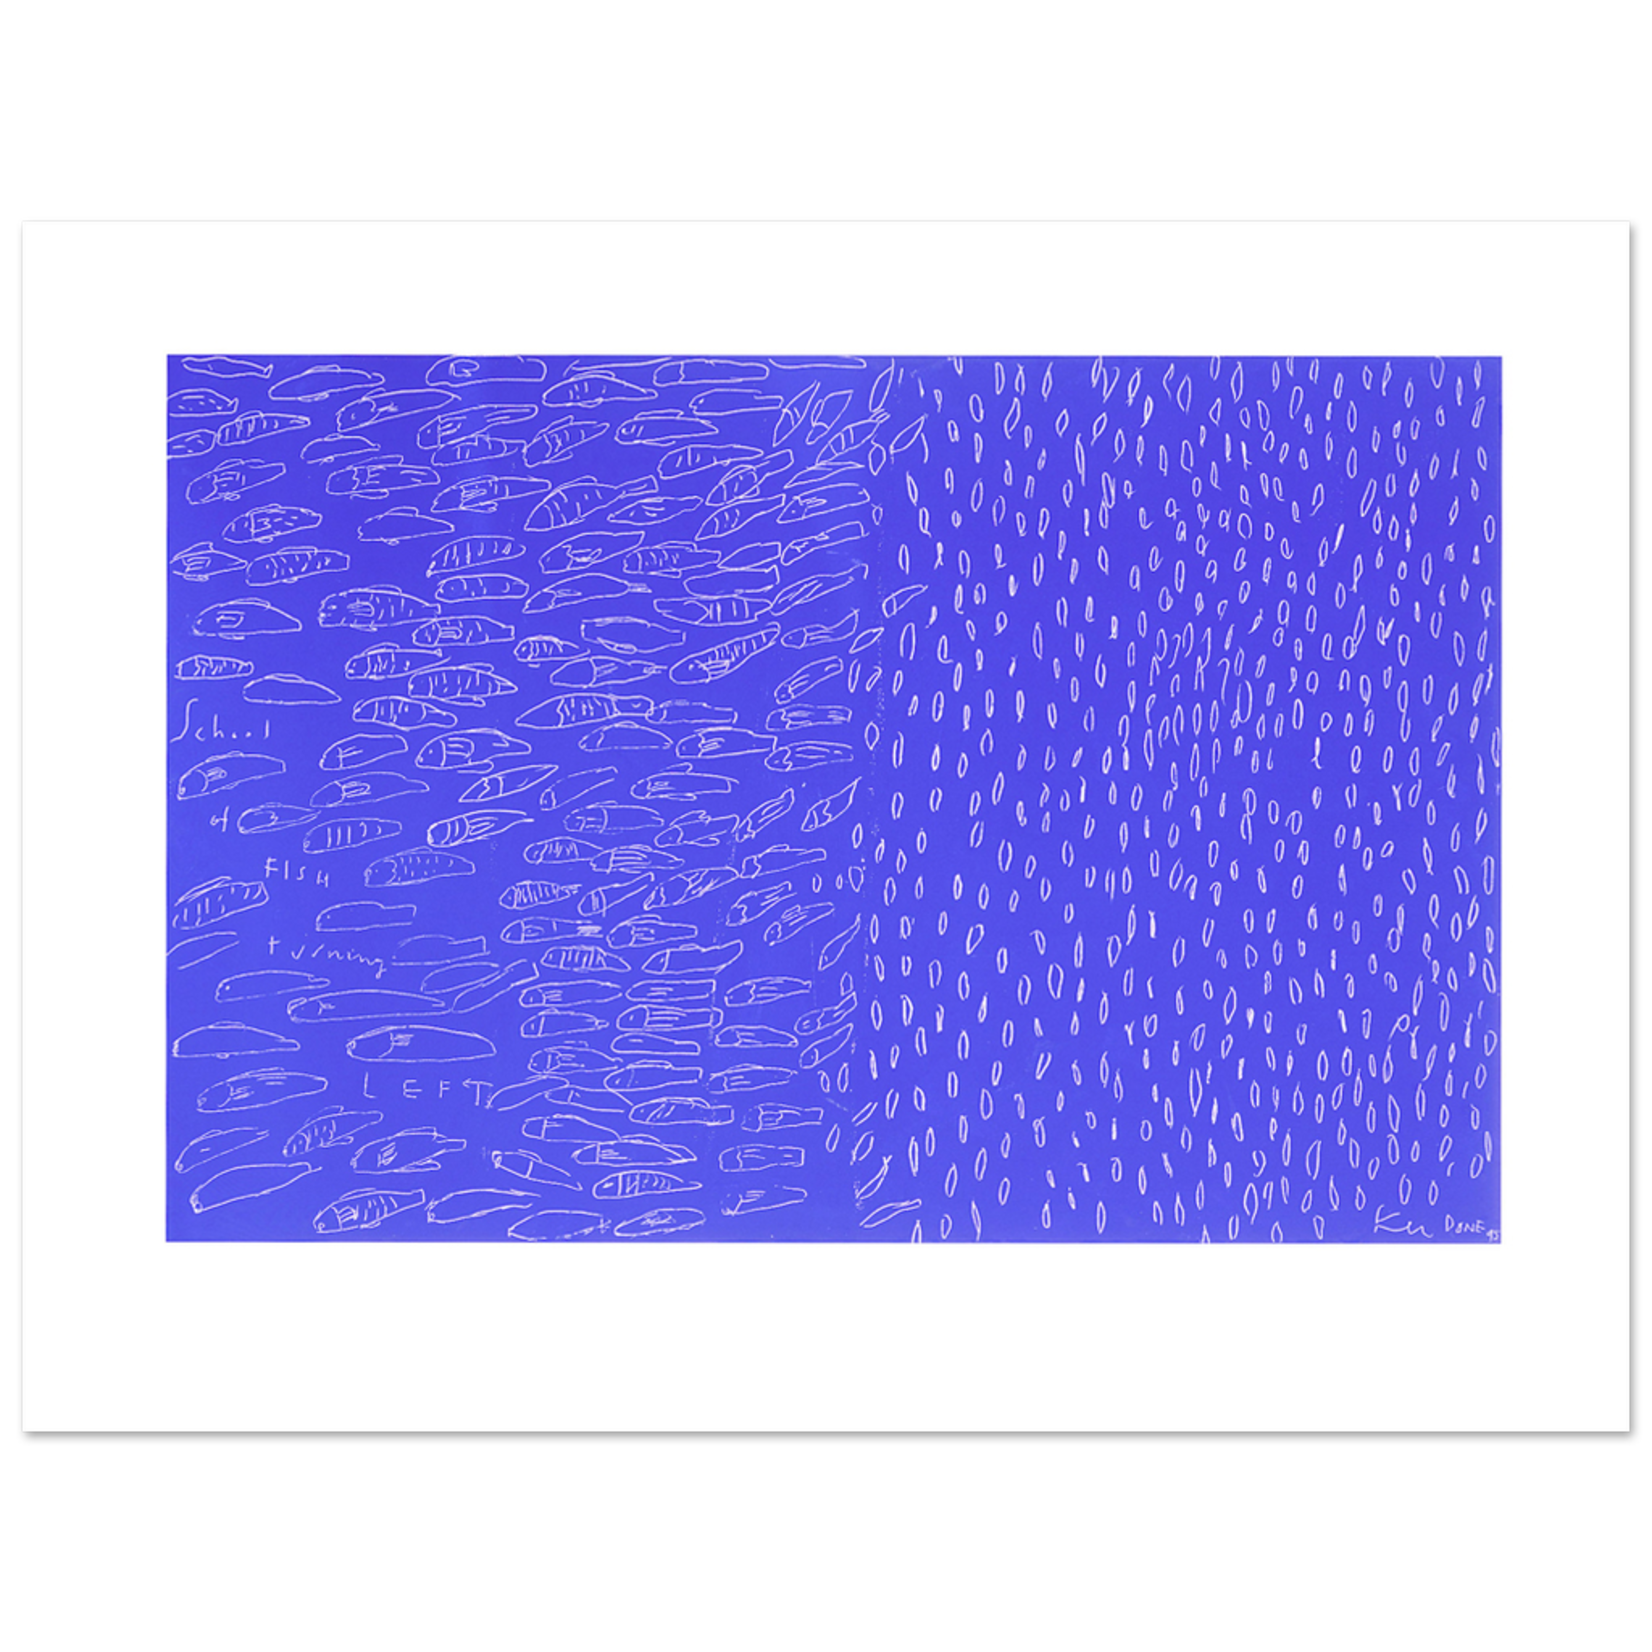 Limited Edition Prints School of fish, turning left, 1995